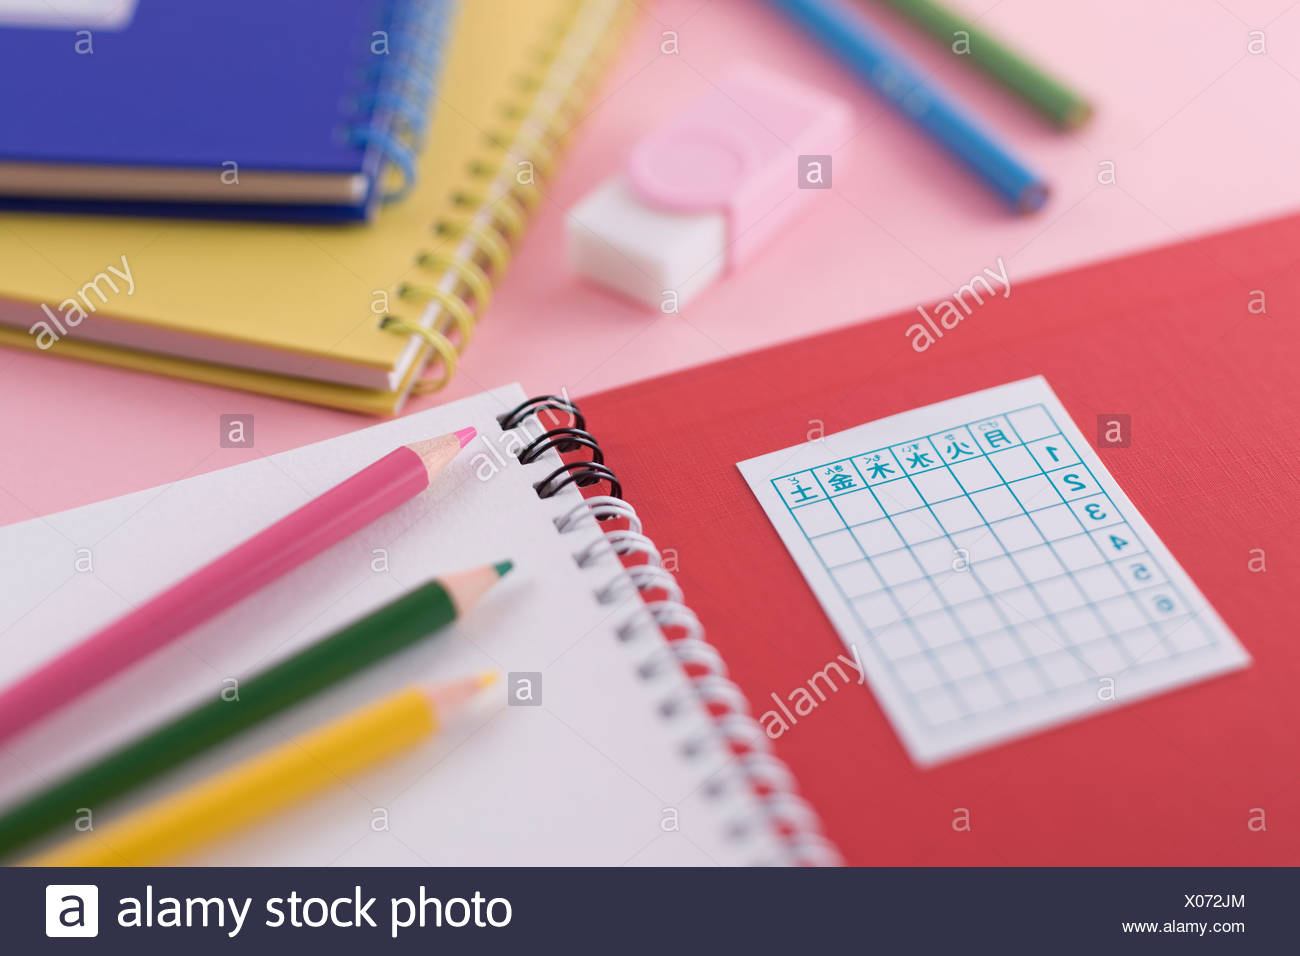 Notebook and colored pencil - Stock Image